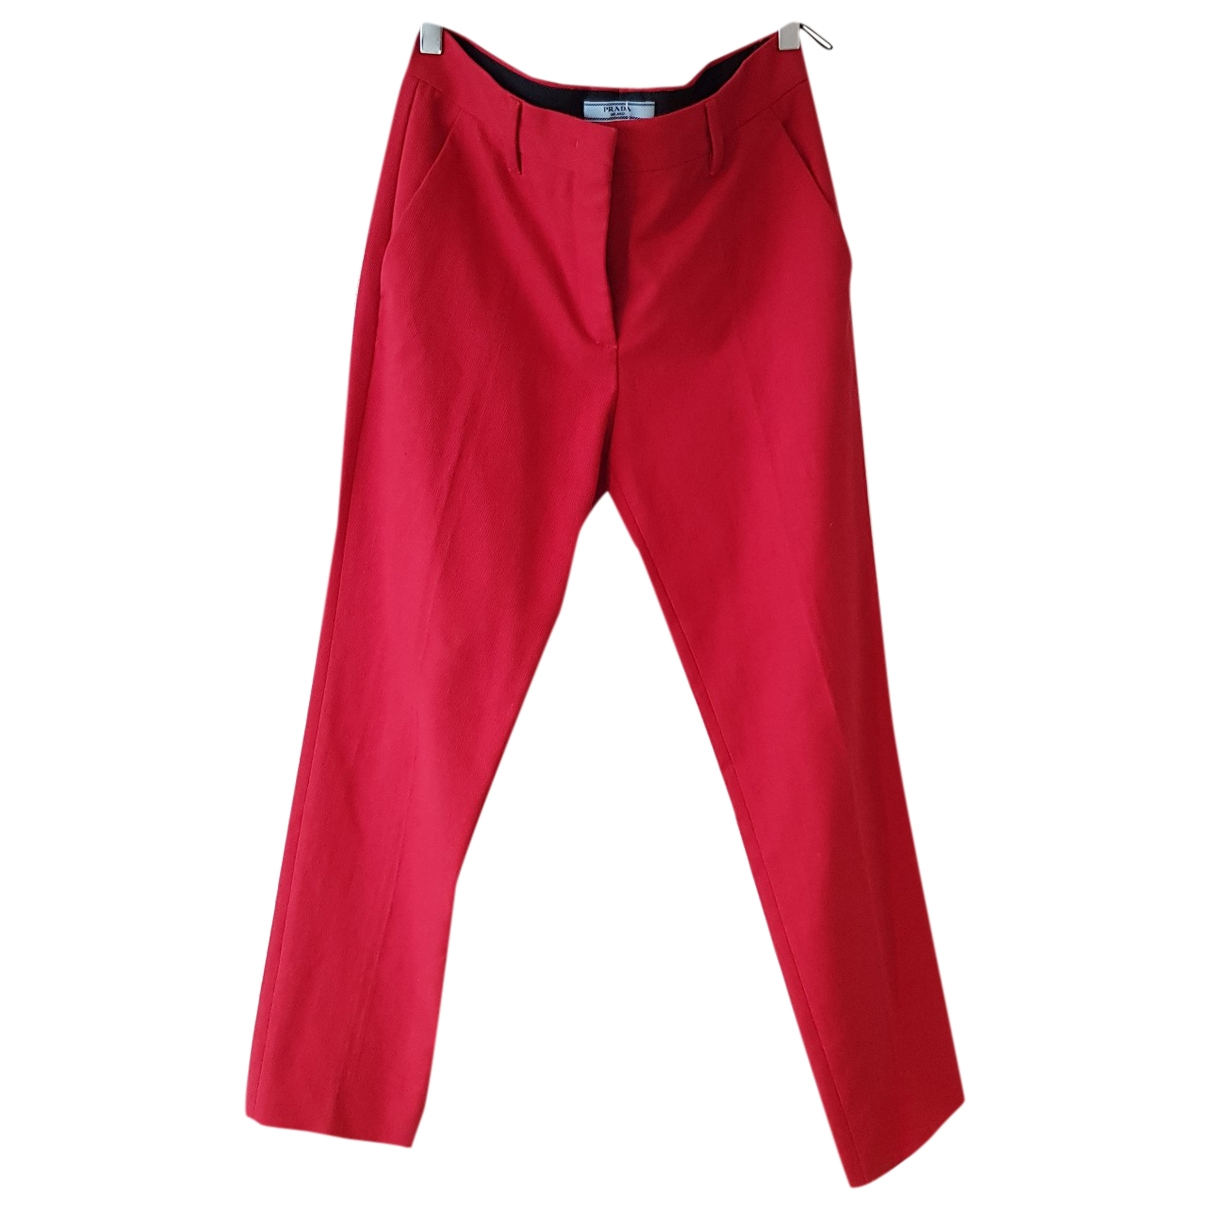 Prada \N Red Cotton Trousers for Women 42 IT